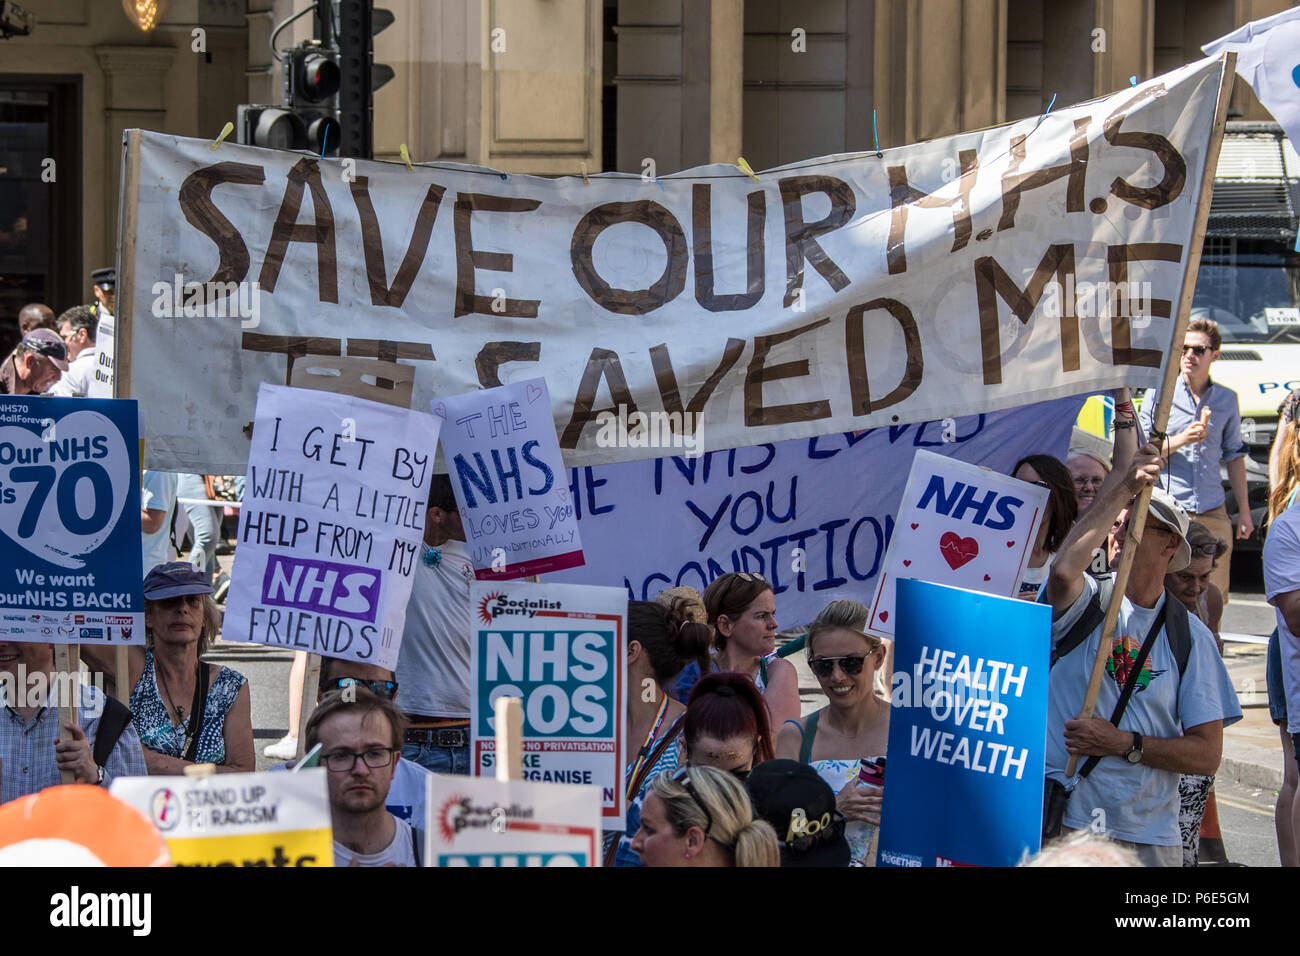 London, UK. 30 June, 2018. A large banner amongst the placards reads ' Save our NHS, It saved me'. With the NHS 70 years old this year, thousands marched through central London in a National rally to show support for the service and to demand more funding from the Government. David Rowe/Alamy Live News - Stock Image